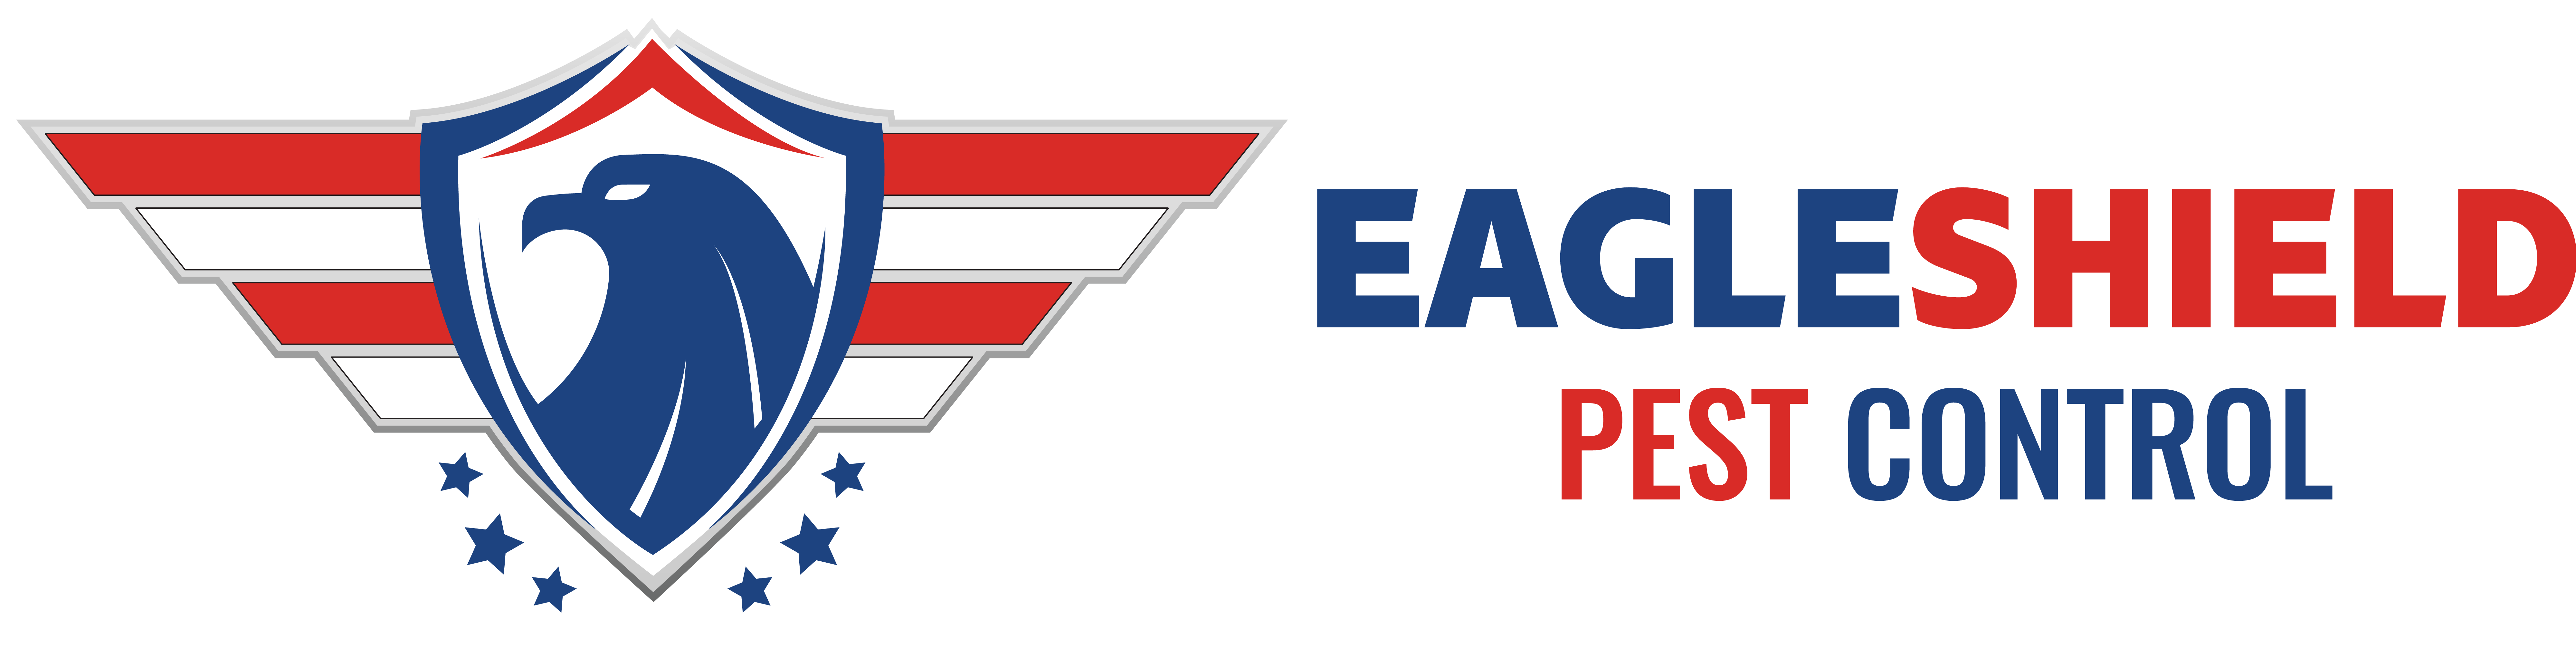 EagleShield Pest Control Highlights the Advantages of Hiring a Professional Pest Control Company